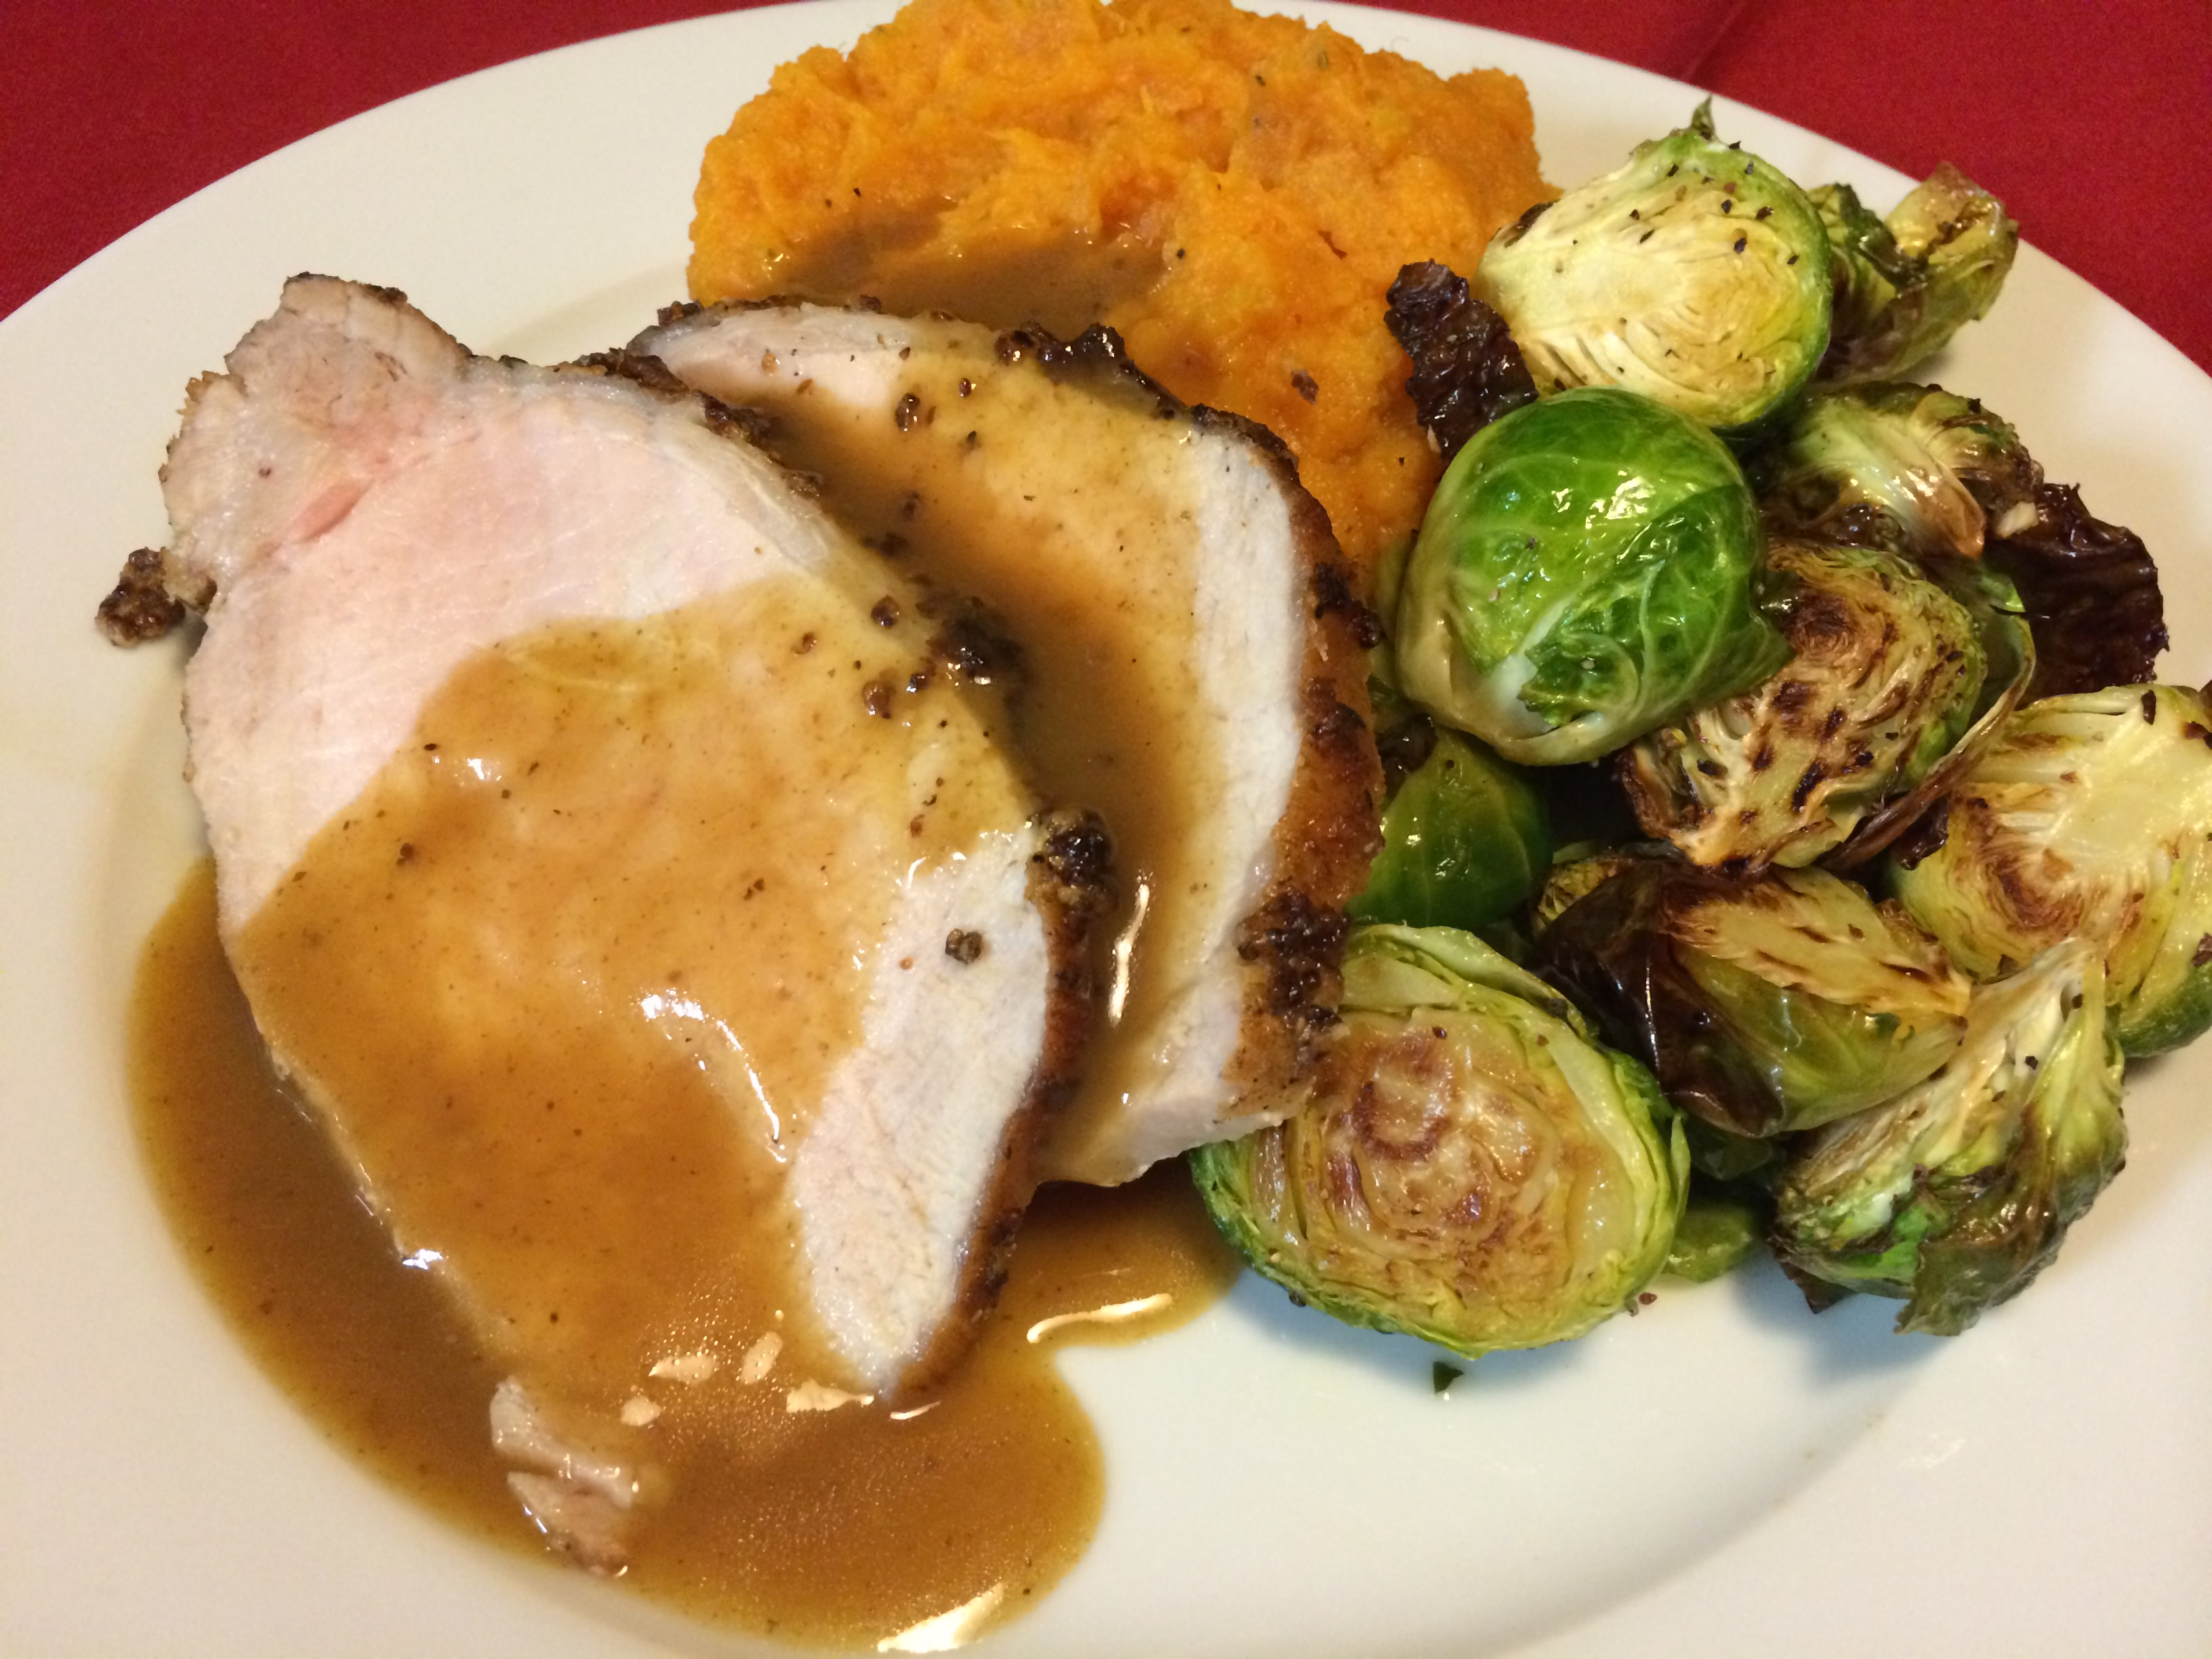 Pork loin and sweet potato